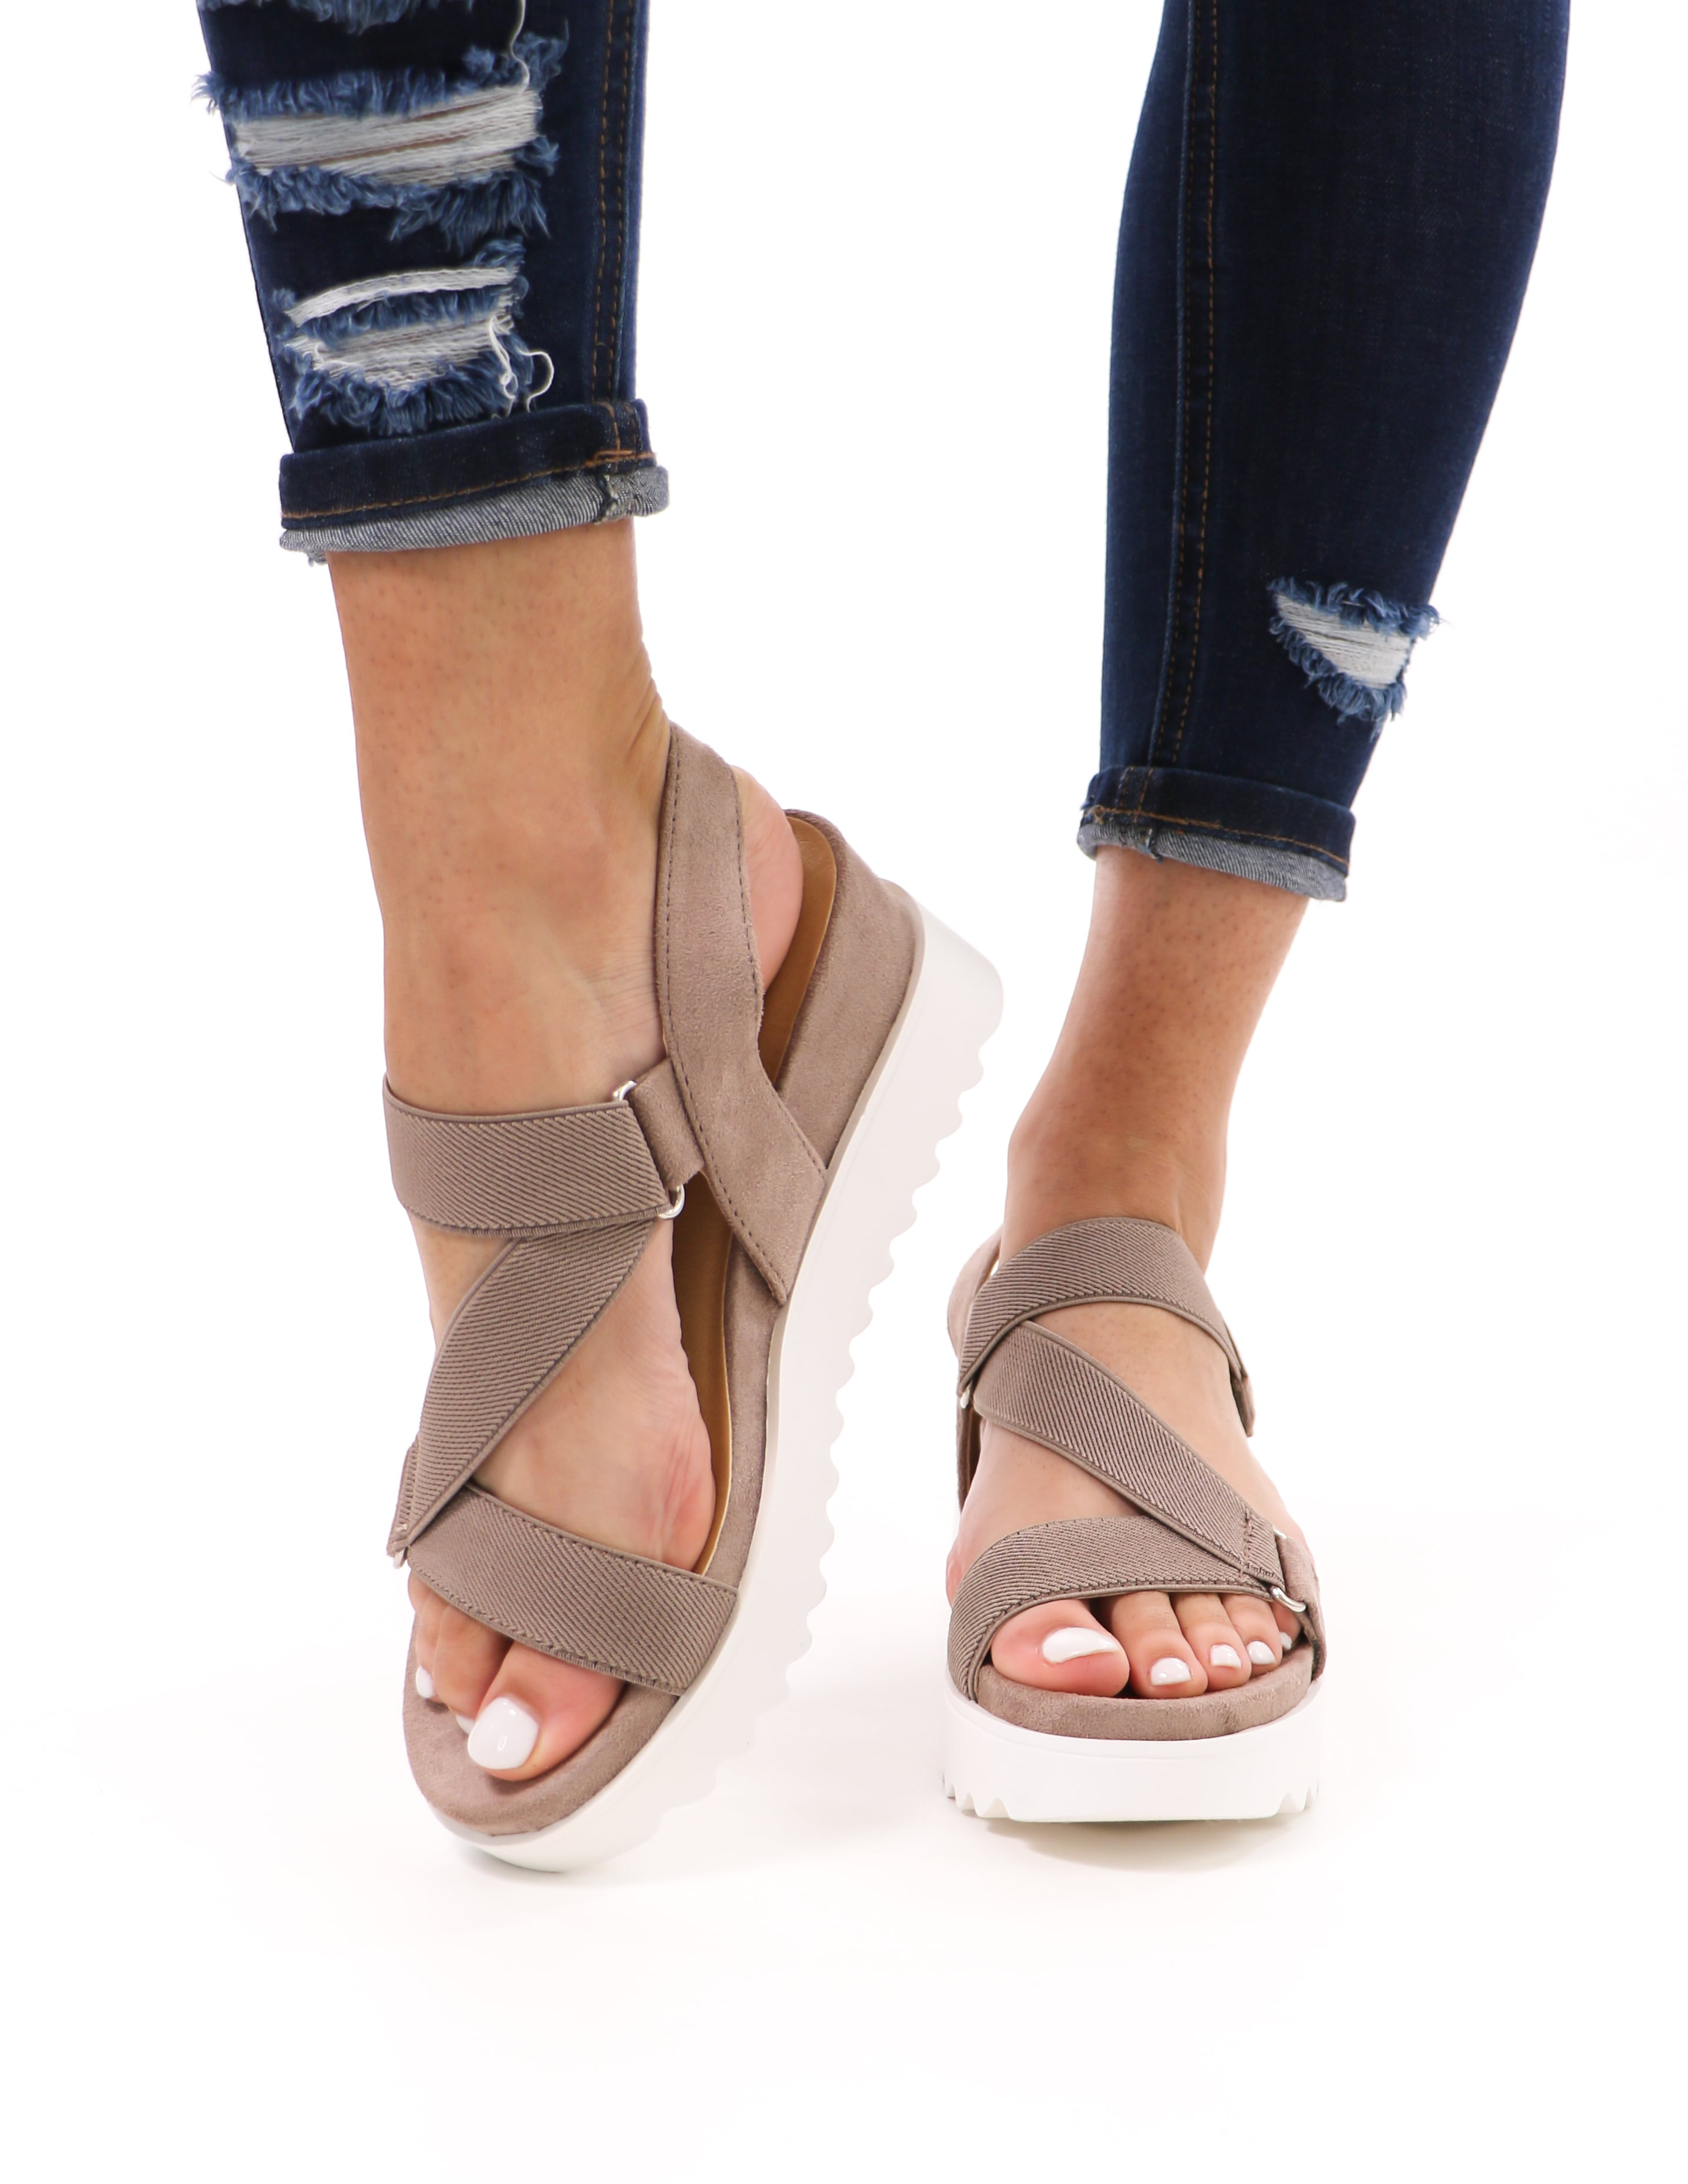 strappy go lucky sandals with white chunky rubber sole and taupe straps and insole on model - elle bleu shoes